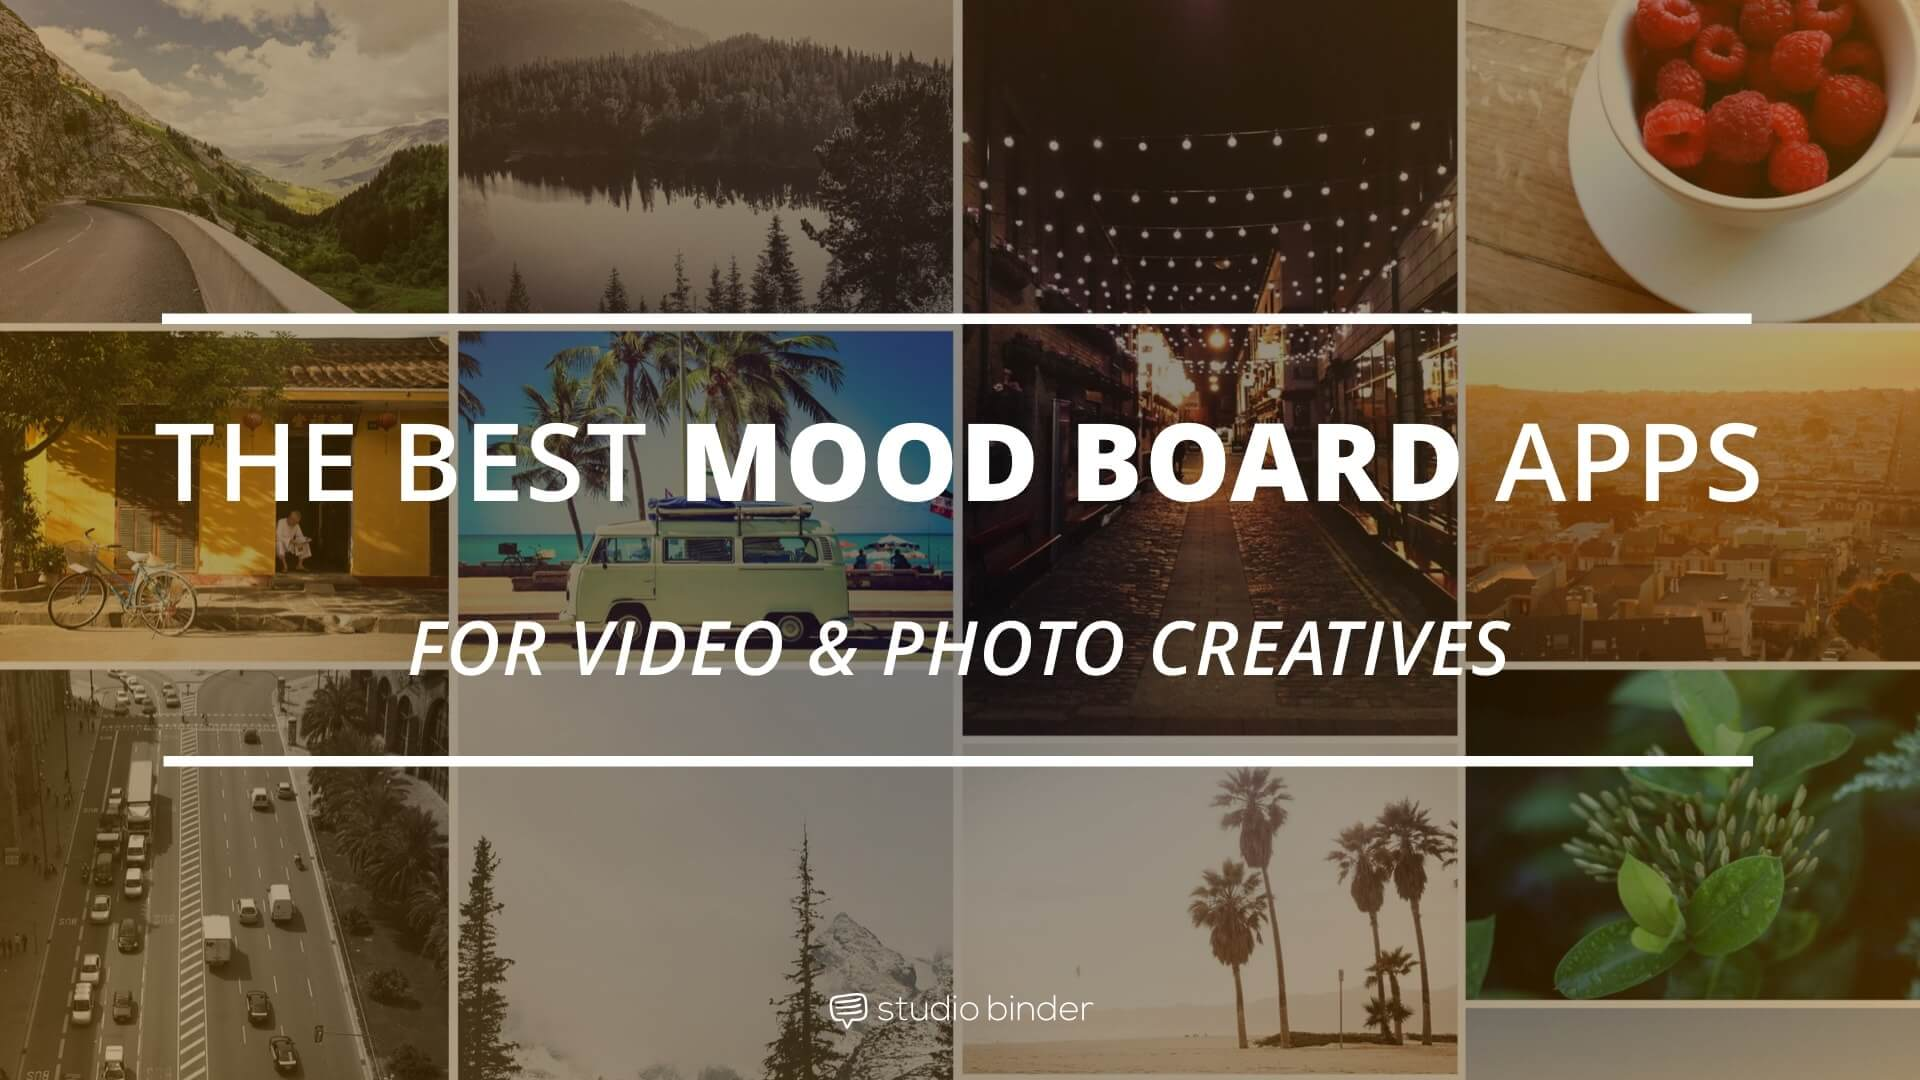 Top Mood Board Apps of 2017 for Video Production [with FREE Template] - Social Image - StudioBinder